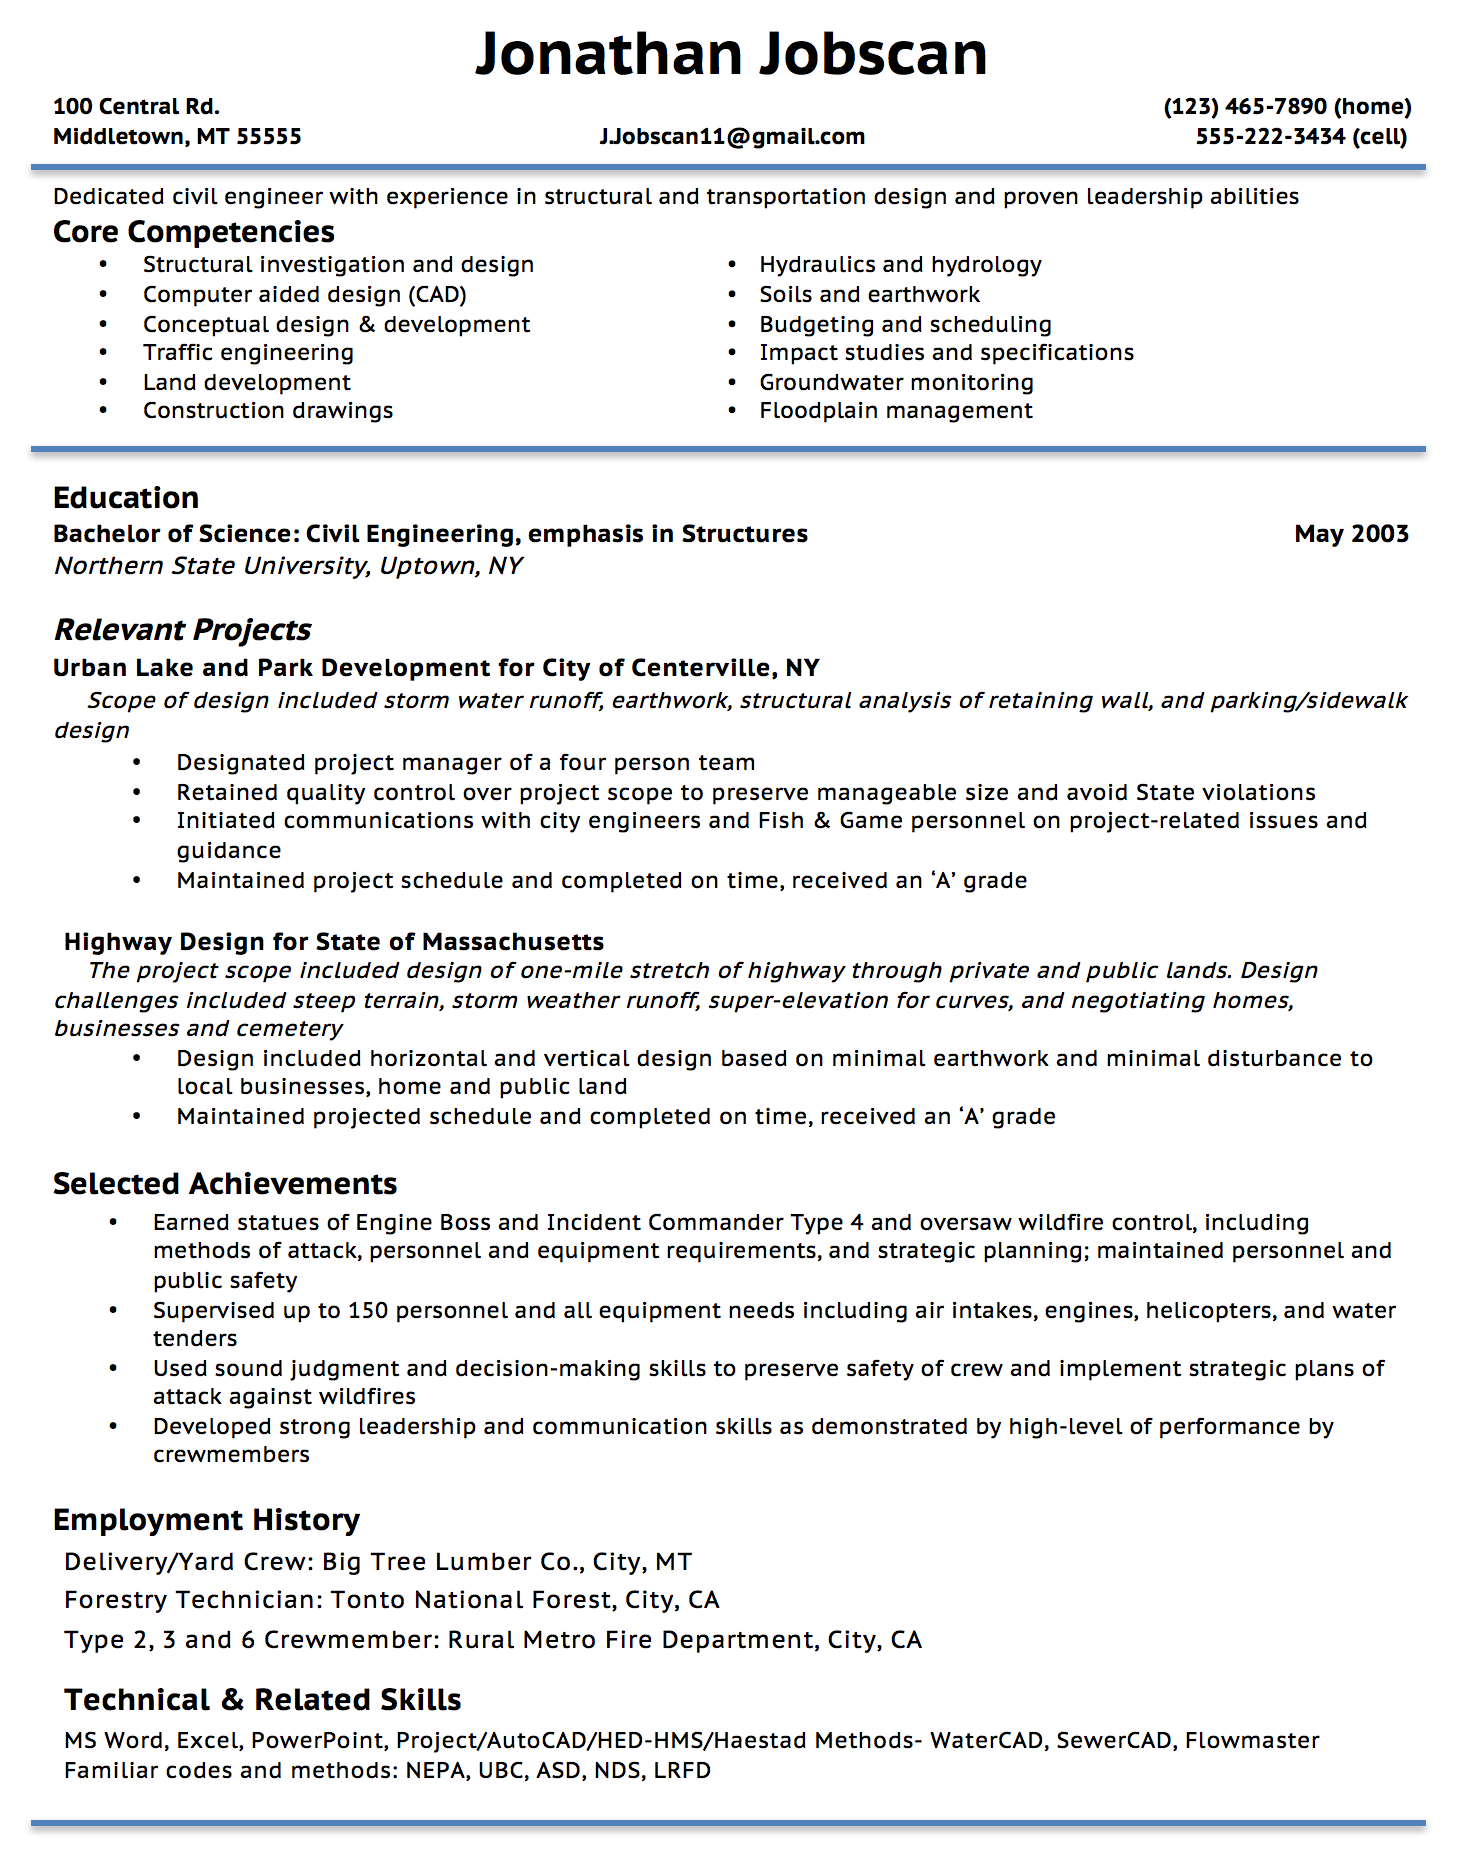 Opposenewapstandardsus  Personable Resume Writing Guide  Jobscan With Likable Example Of A Functional Resume Format With Easy On The Eye Administrative Manager Resume Also Personal Statement Resume Examples In Addition How To Do A Proper Resume And Monster Search Resumes As Well As Microsoft Office Skills Resume Additionally Police Officer Resume Examples From Jobscanco With Opposenewapstandardsus  Likable Resume Writing Guide  Jobscan With Easy On The Eye Example Of A Functional Resume Format And Personable Administrative Manager Resume Also Personal Statement Resume Examples In Addition How To Do A Proper Resume From Jobscanco